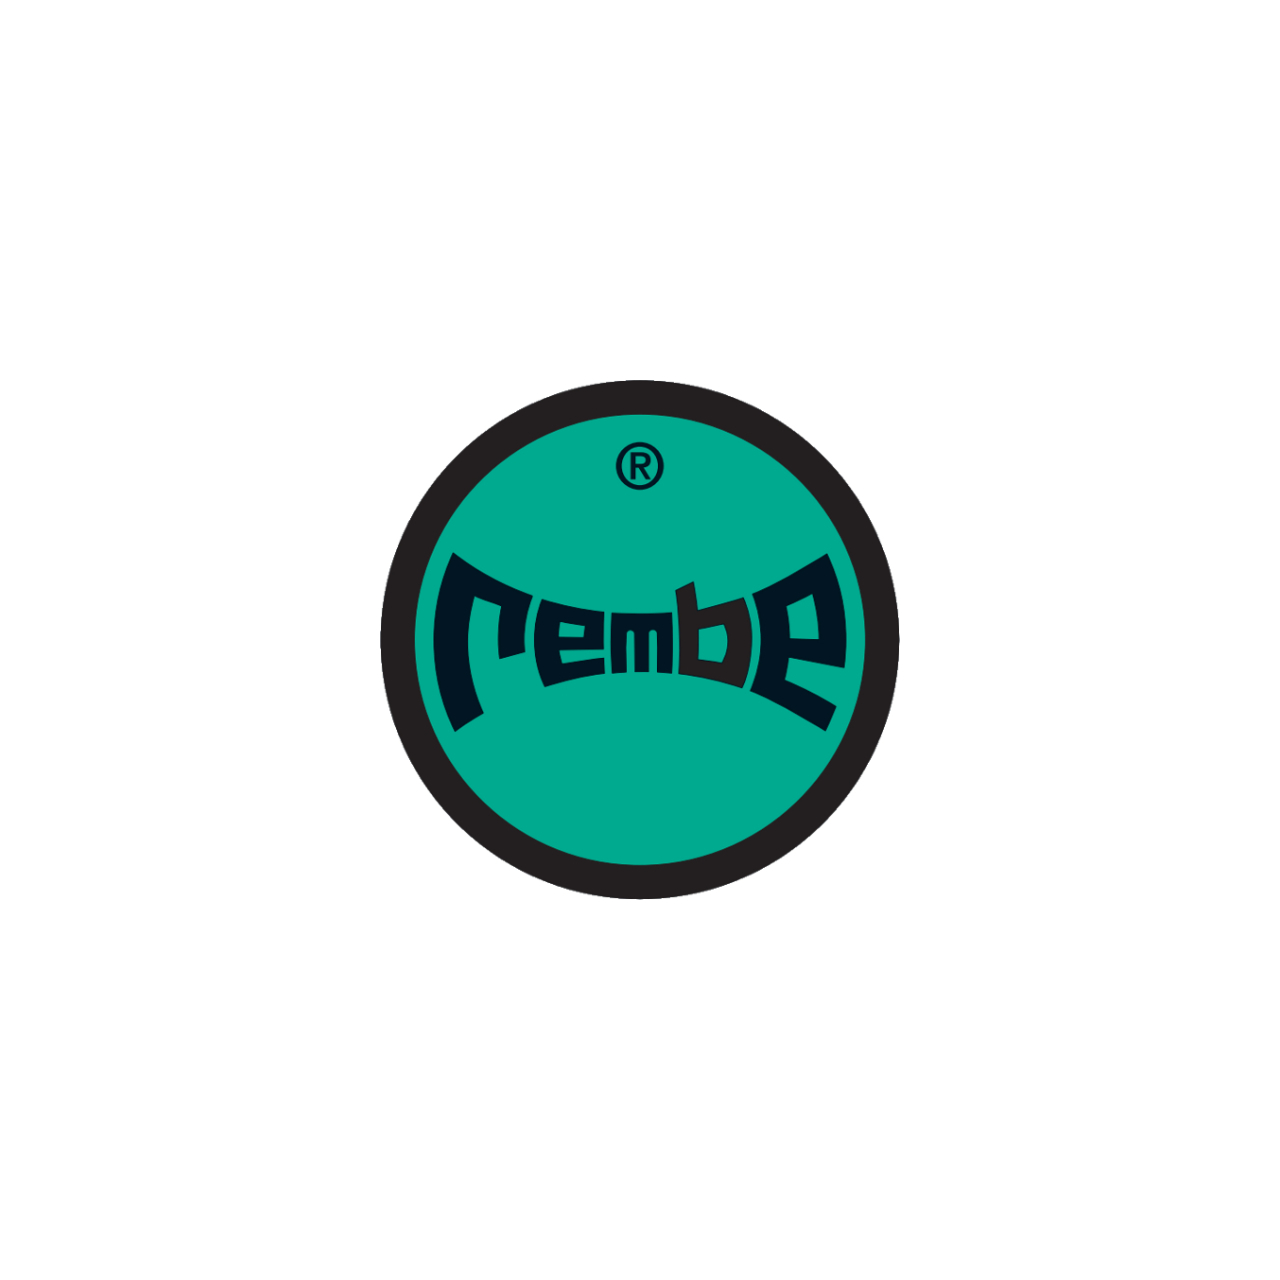 Rembe - Quality Made in Germany